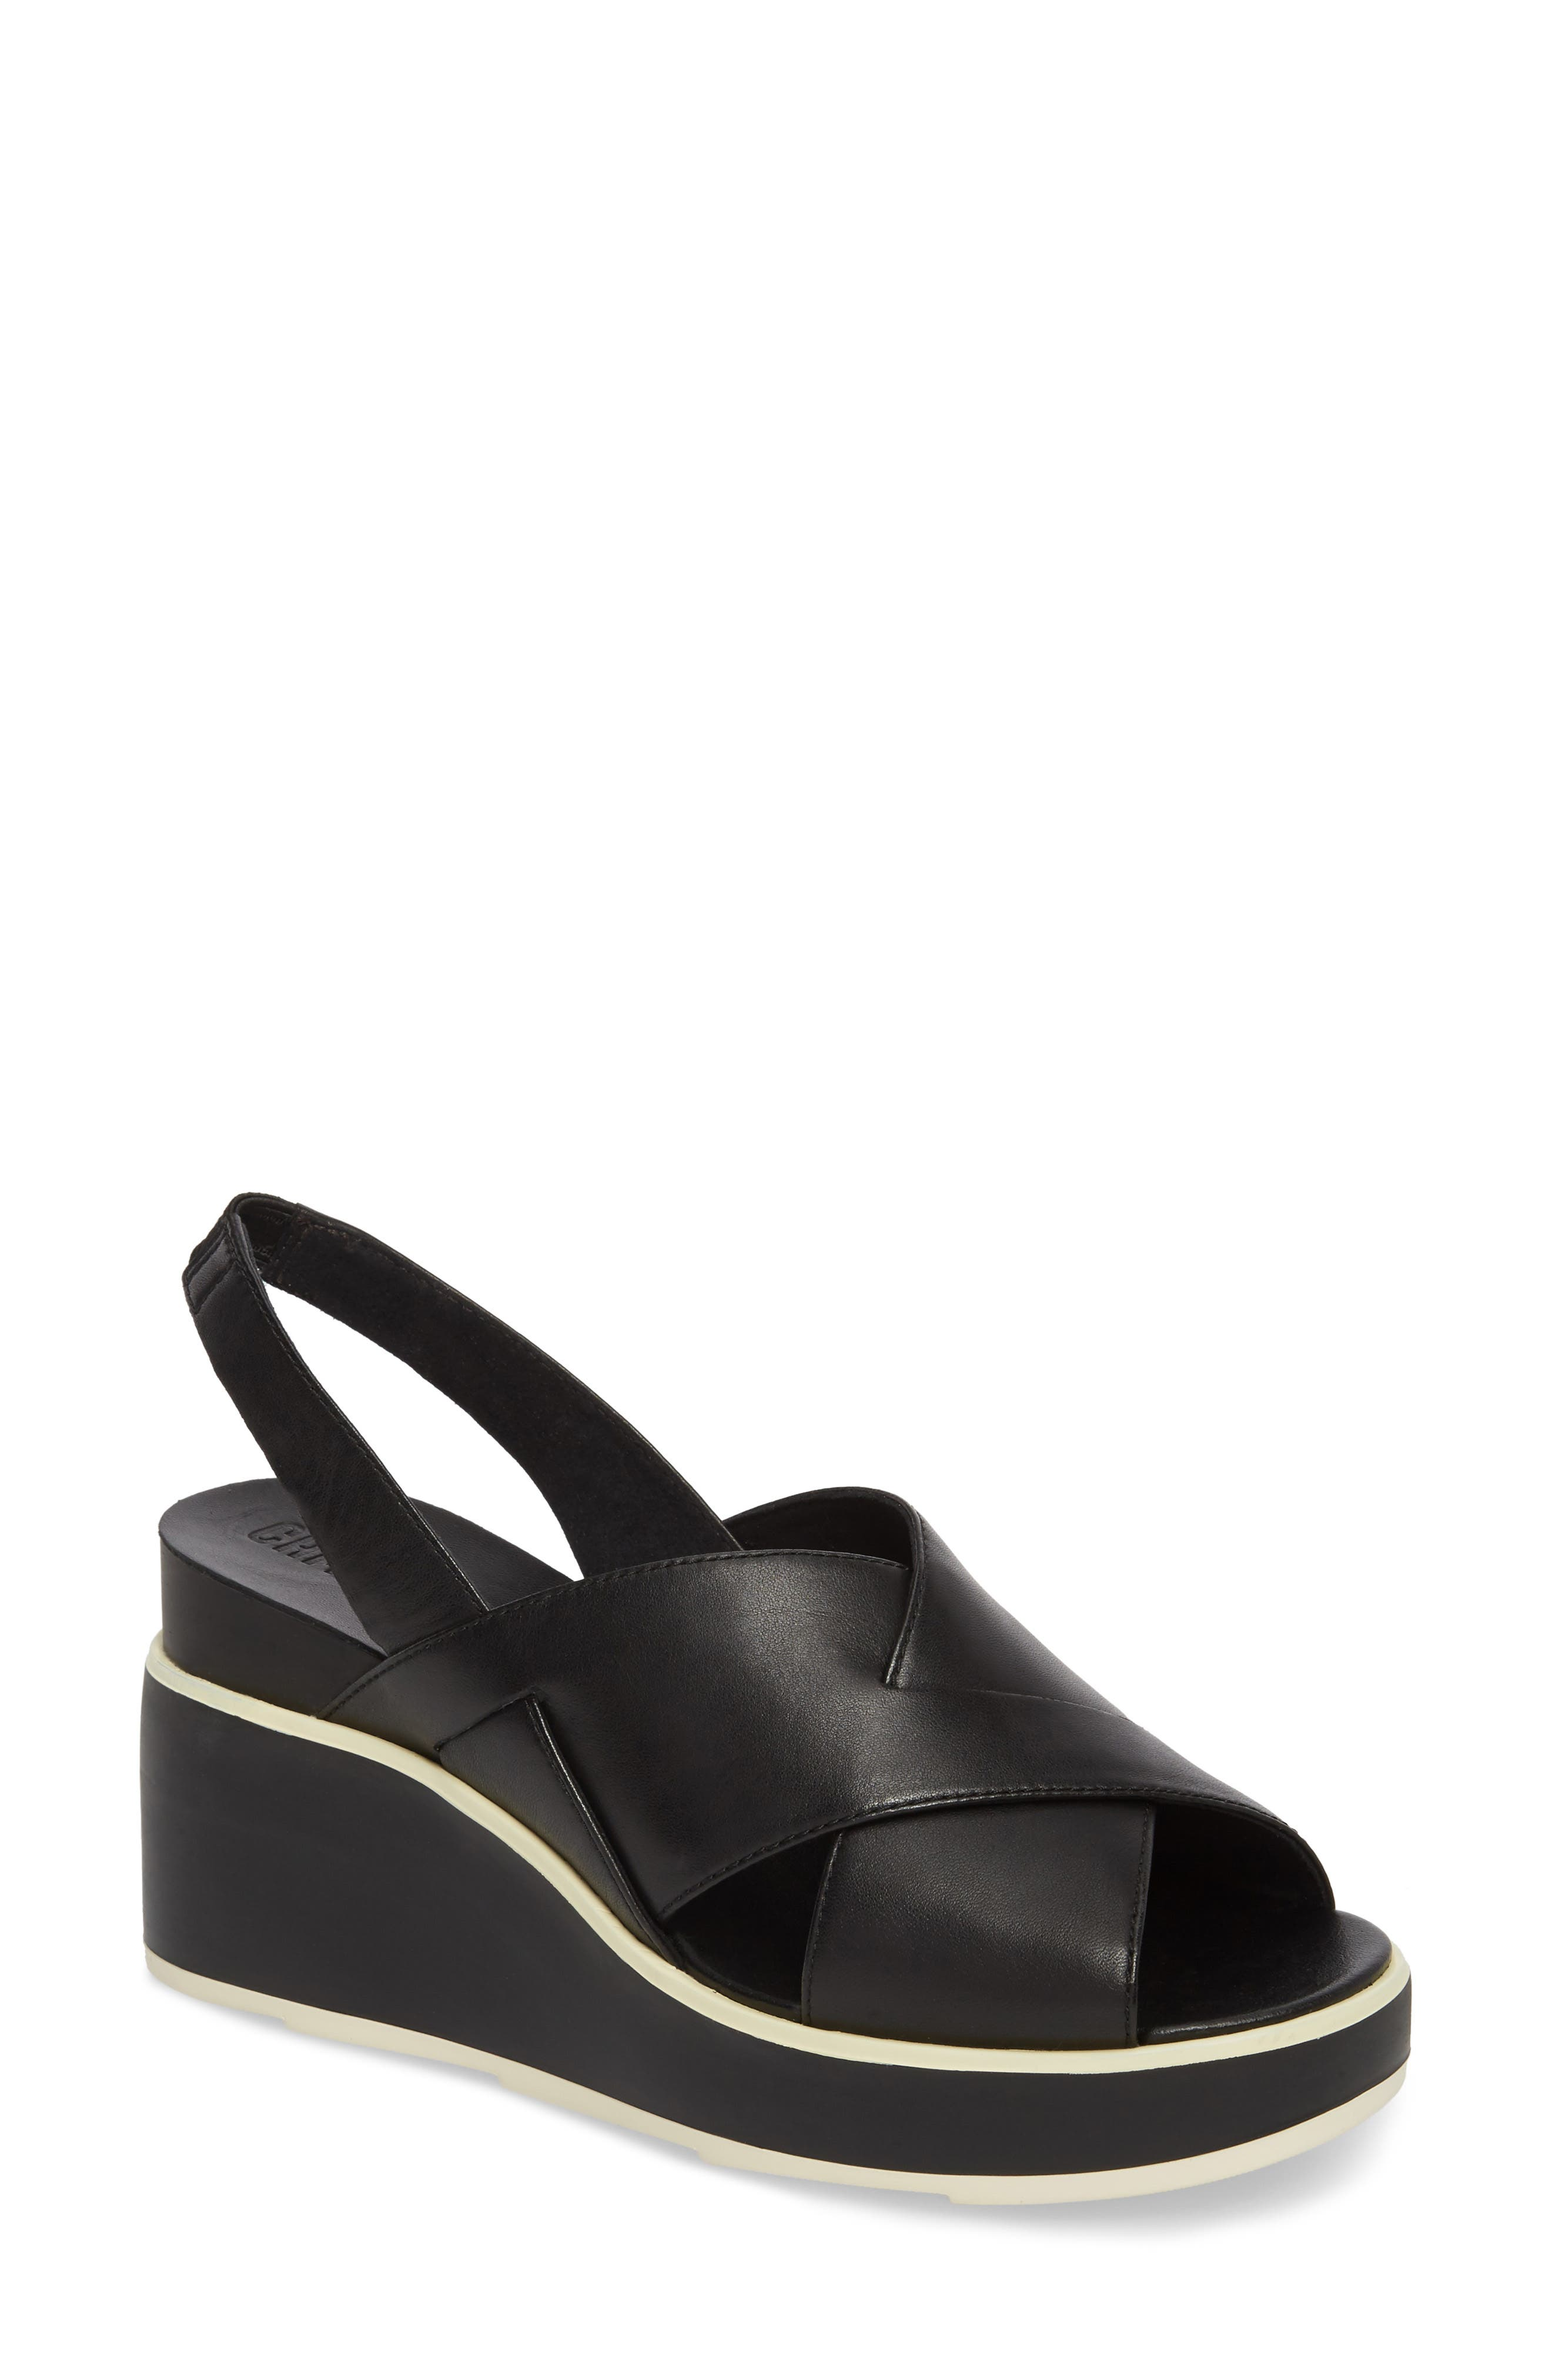 Alternate Image 1 Selected - Camper Tropik Cross Strap Wedge Sandal (Women)